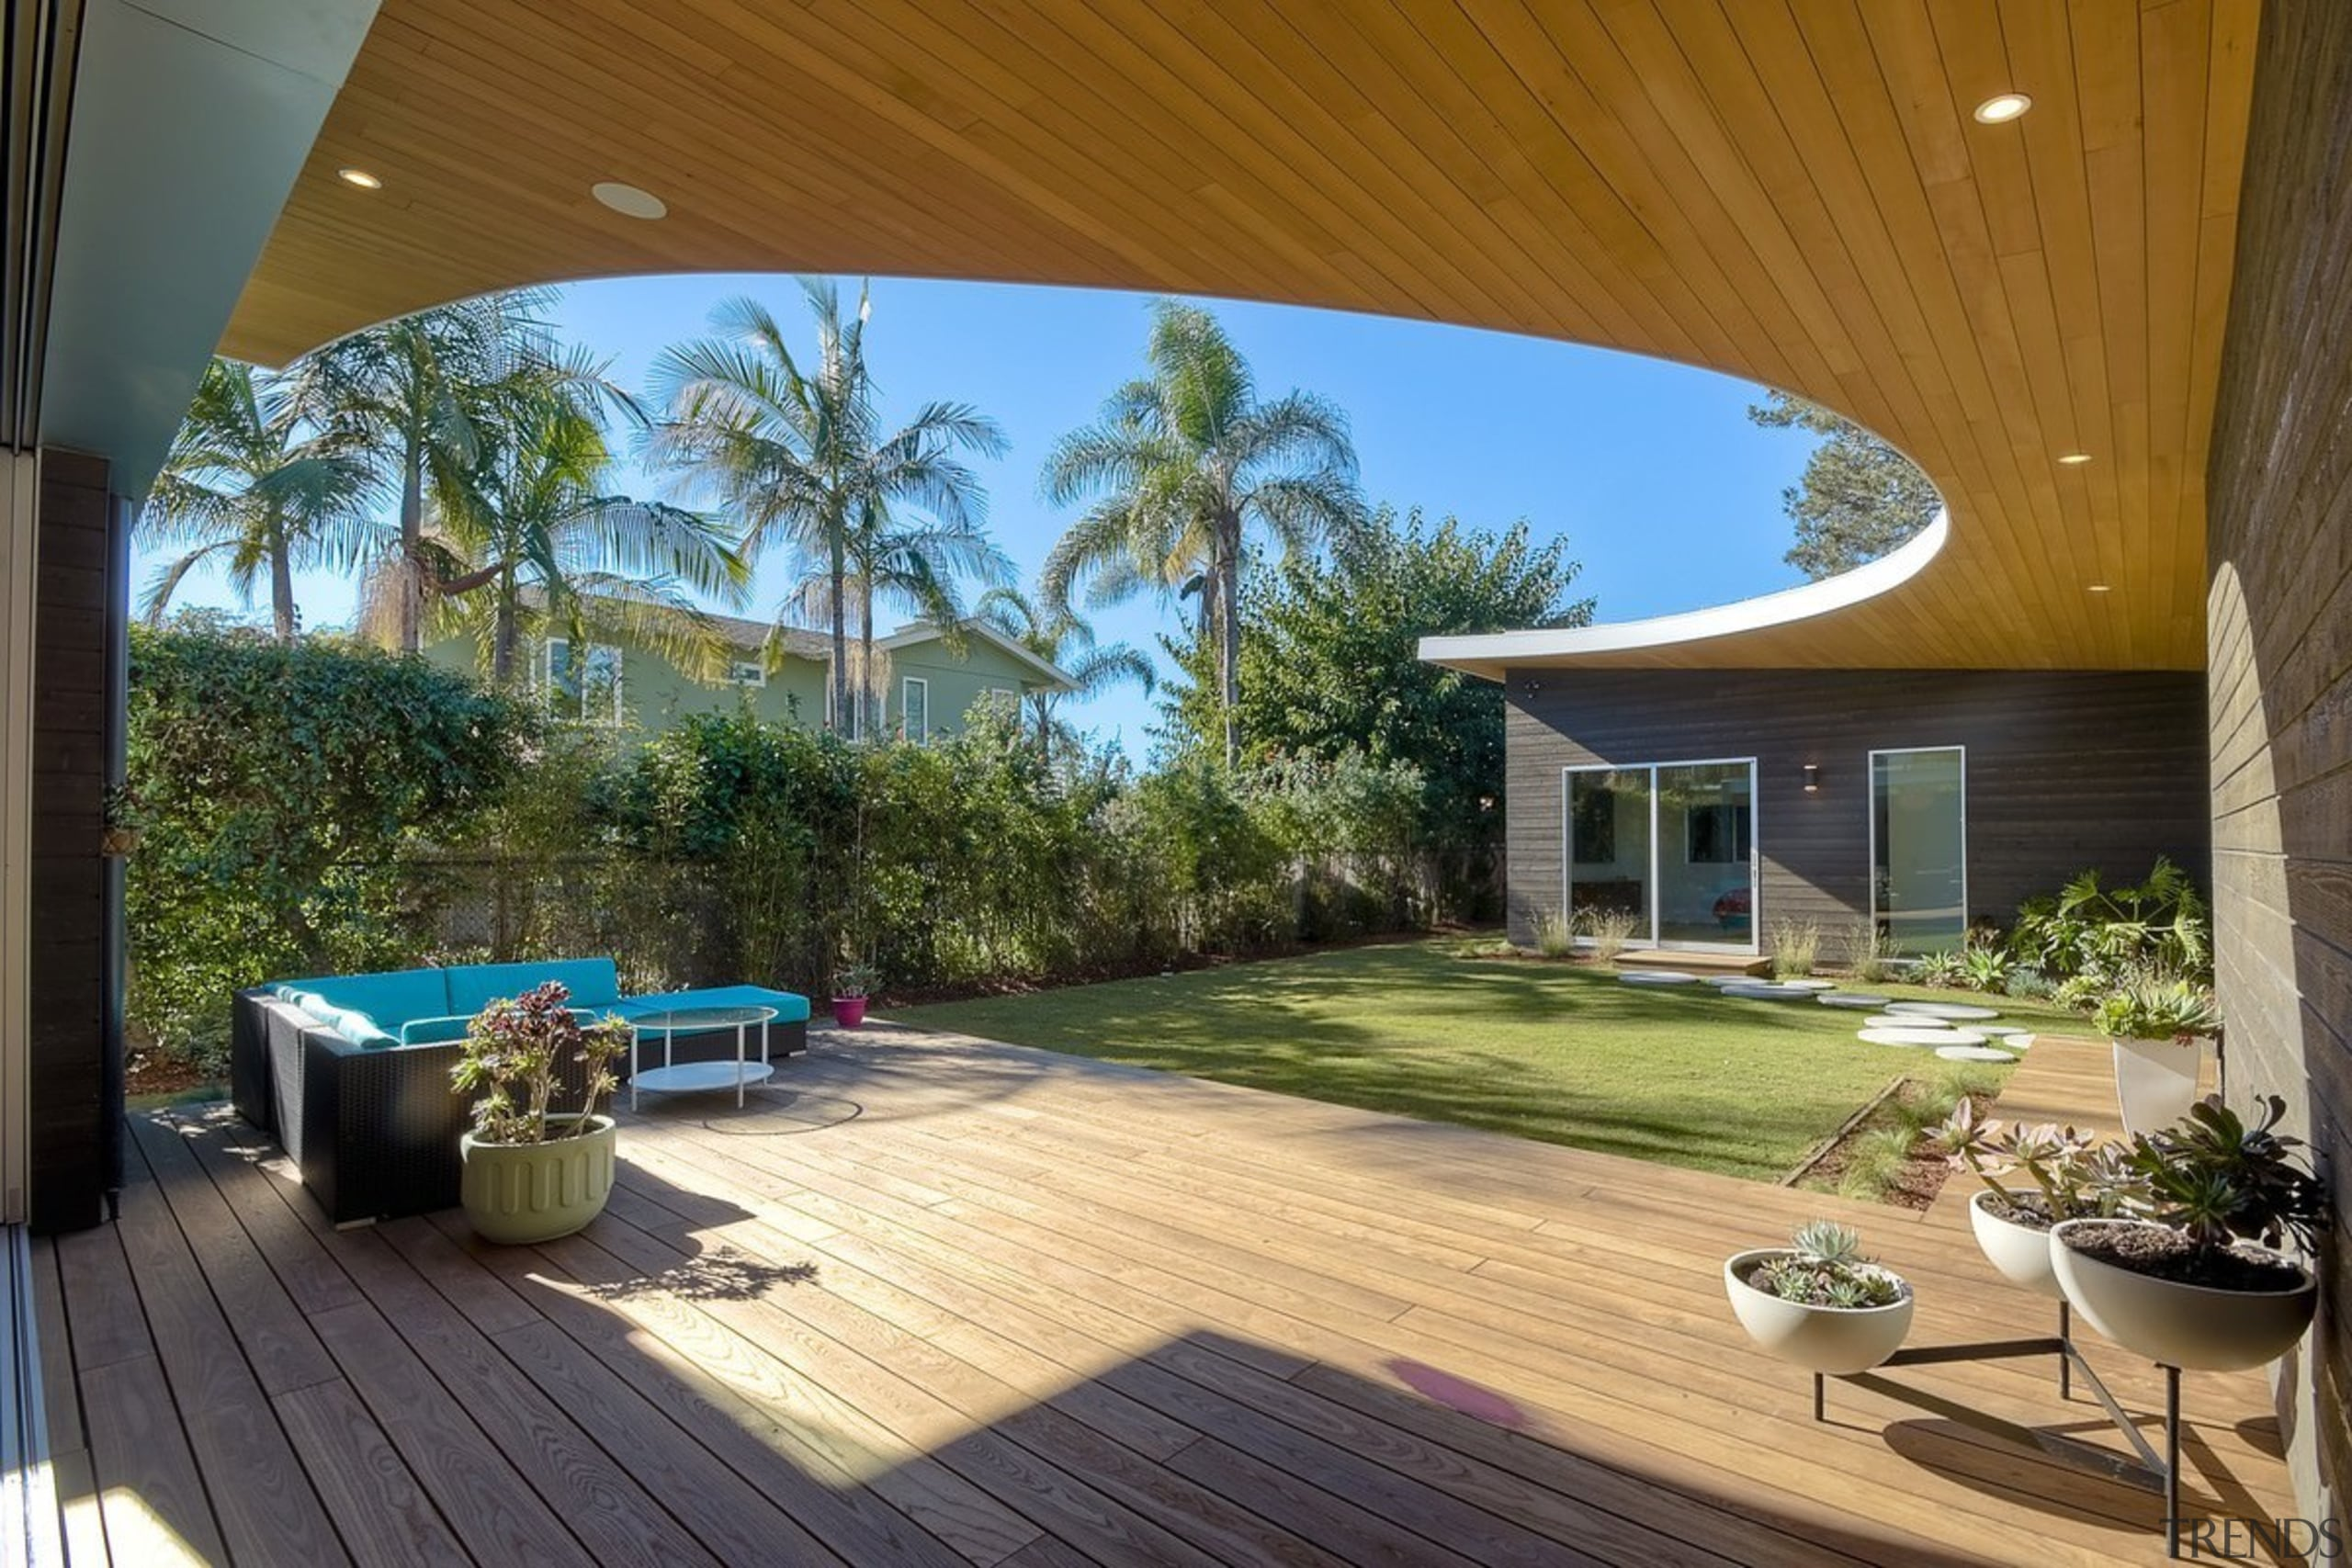 Architect: lloyd russell, aiaPhotography by Darren Bradley backyard, deck, estate, home, house, interior design, outdoor structure, property, real estate, resort, roof, brown